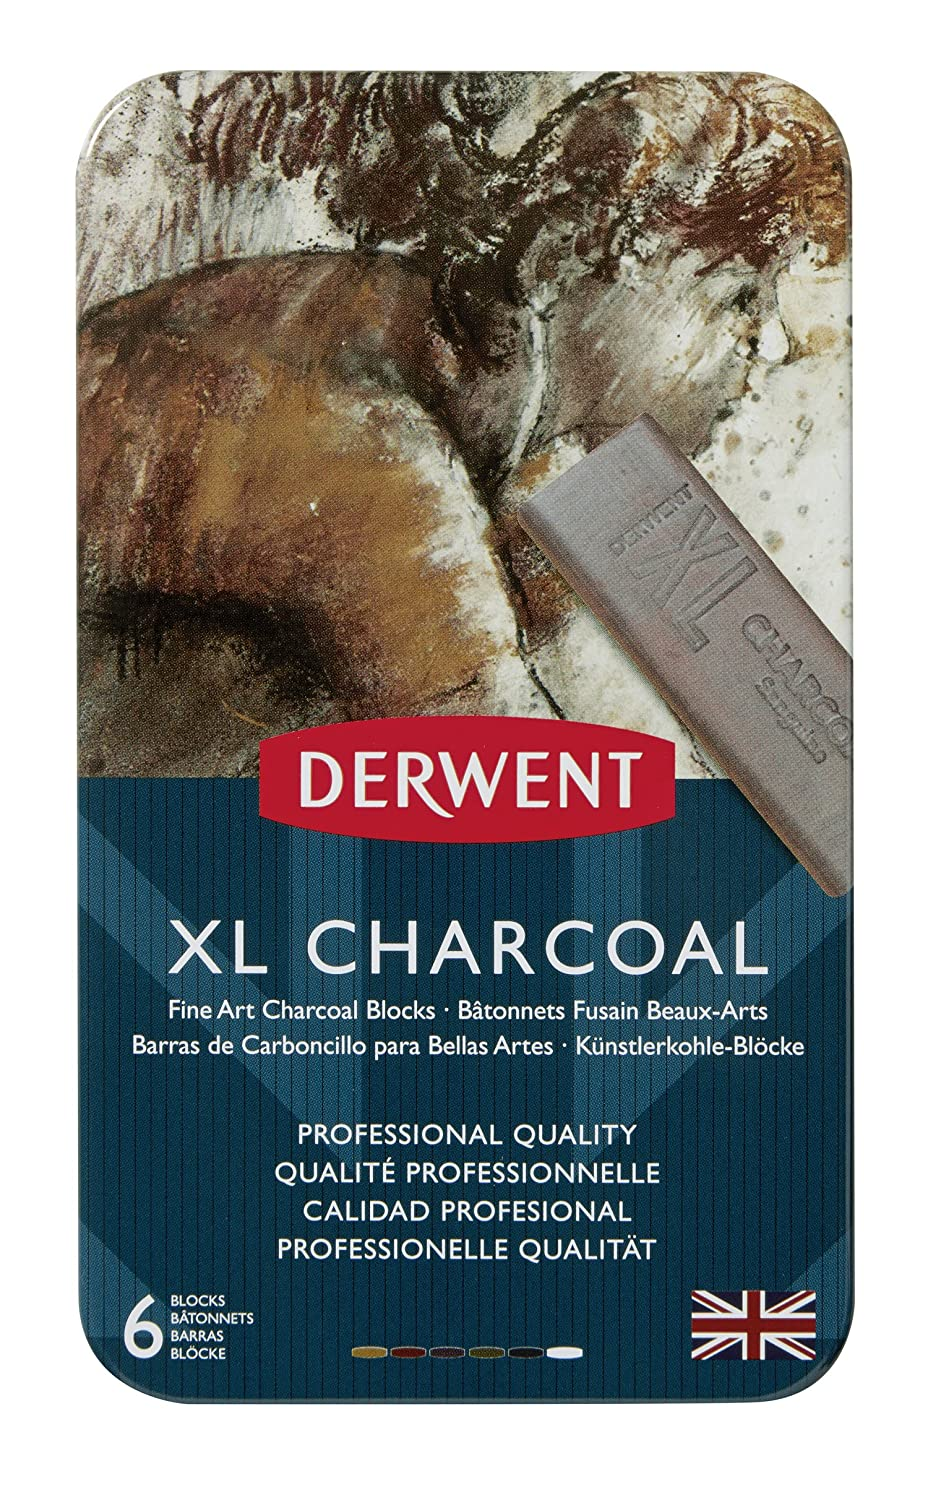 Derwent XL Tinted Charcoal Drawing Blocks, Set of 6, Professional Quality, 2302009, Multicolor Acco